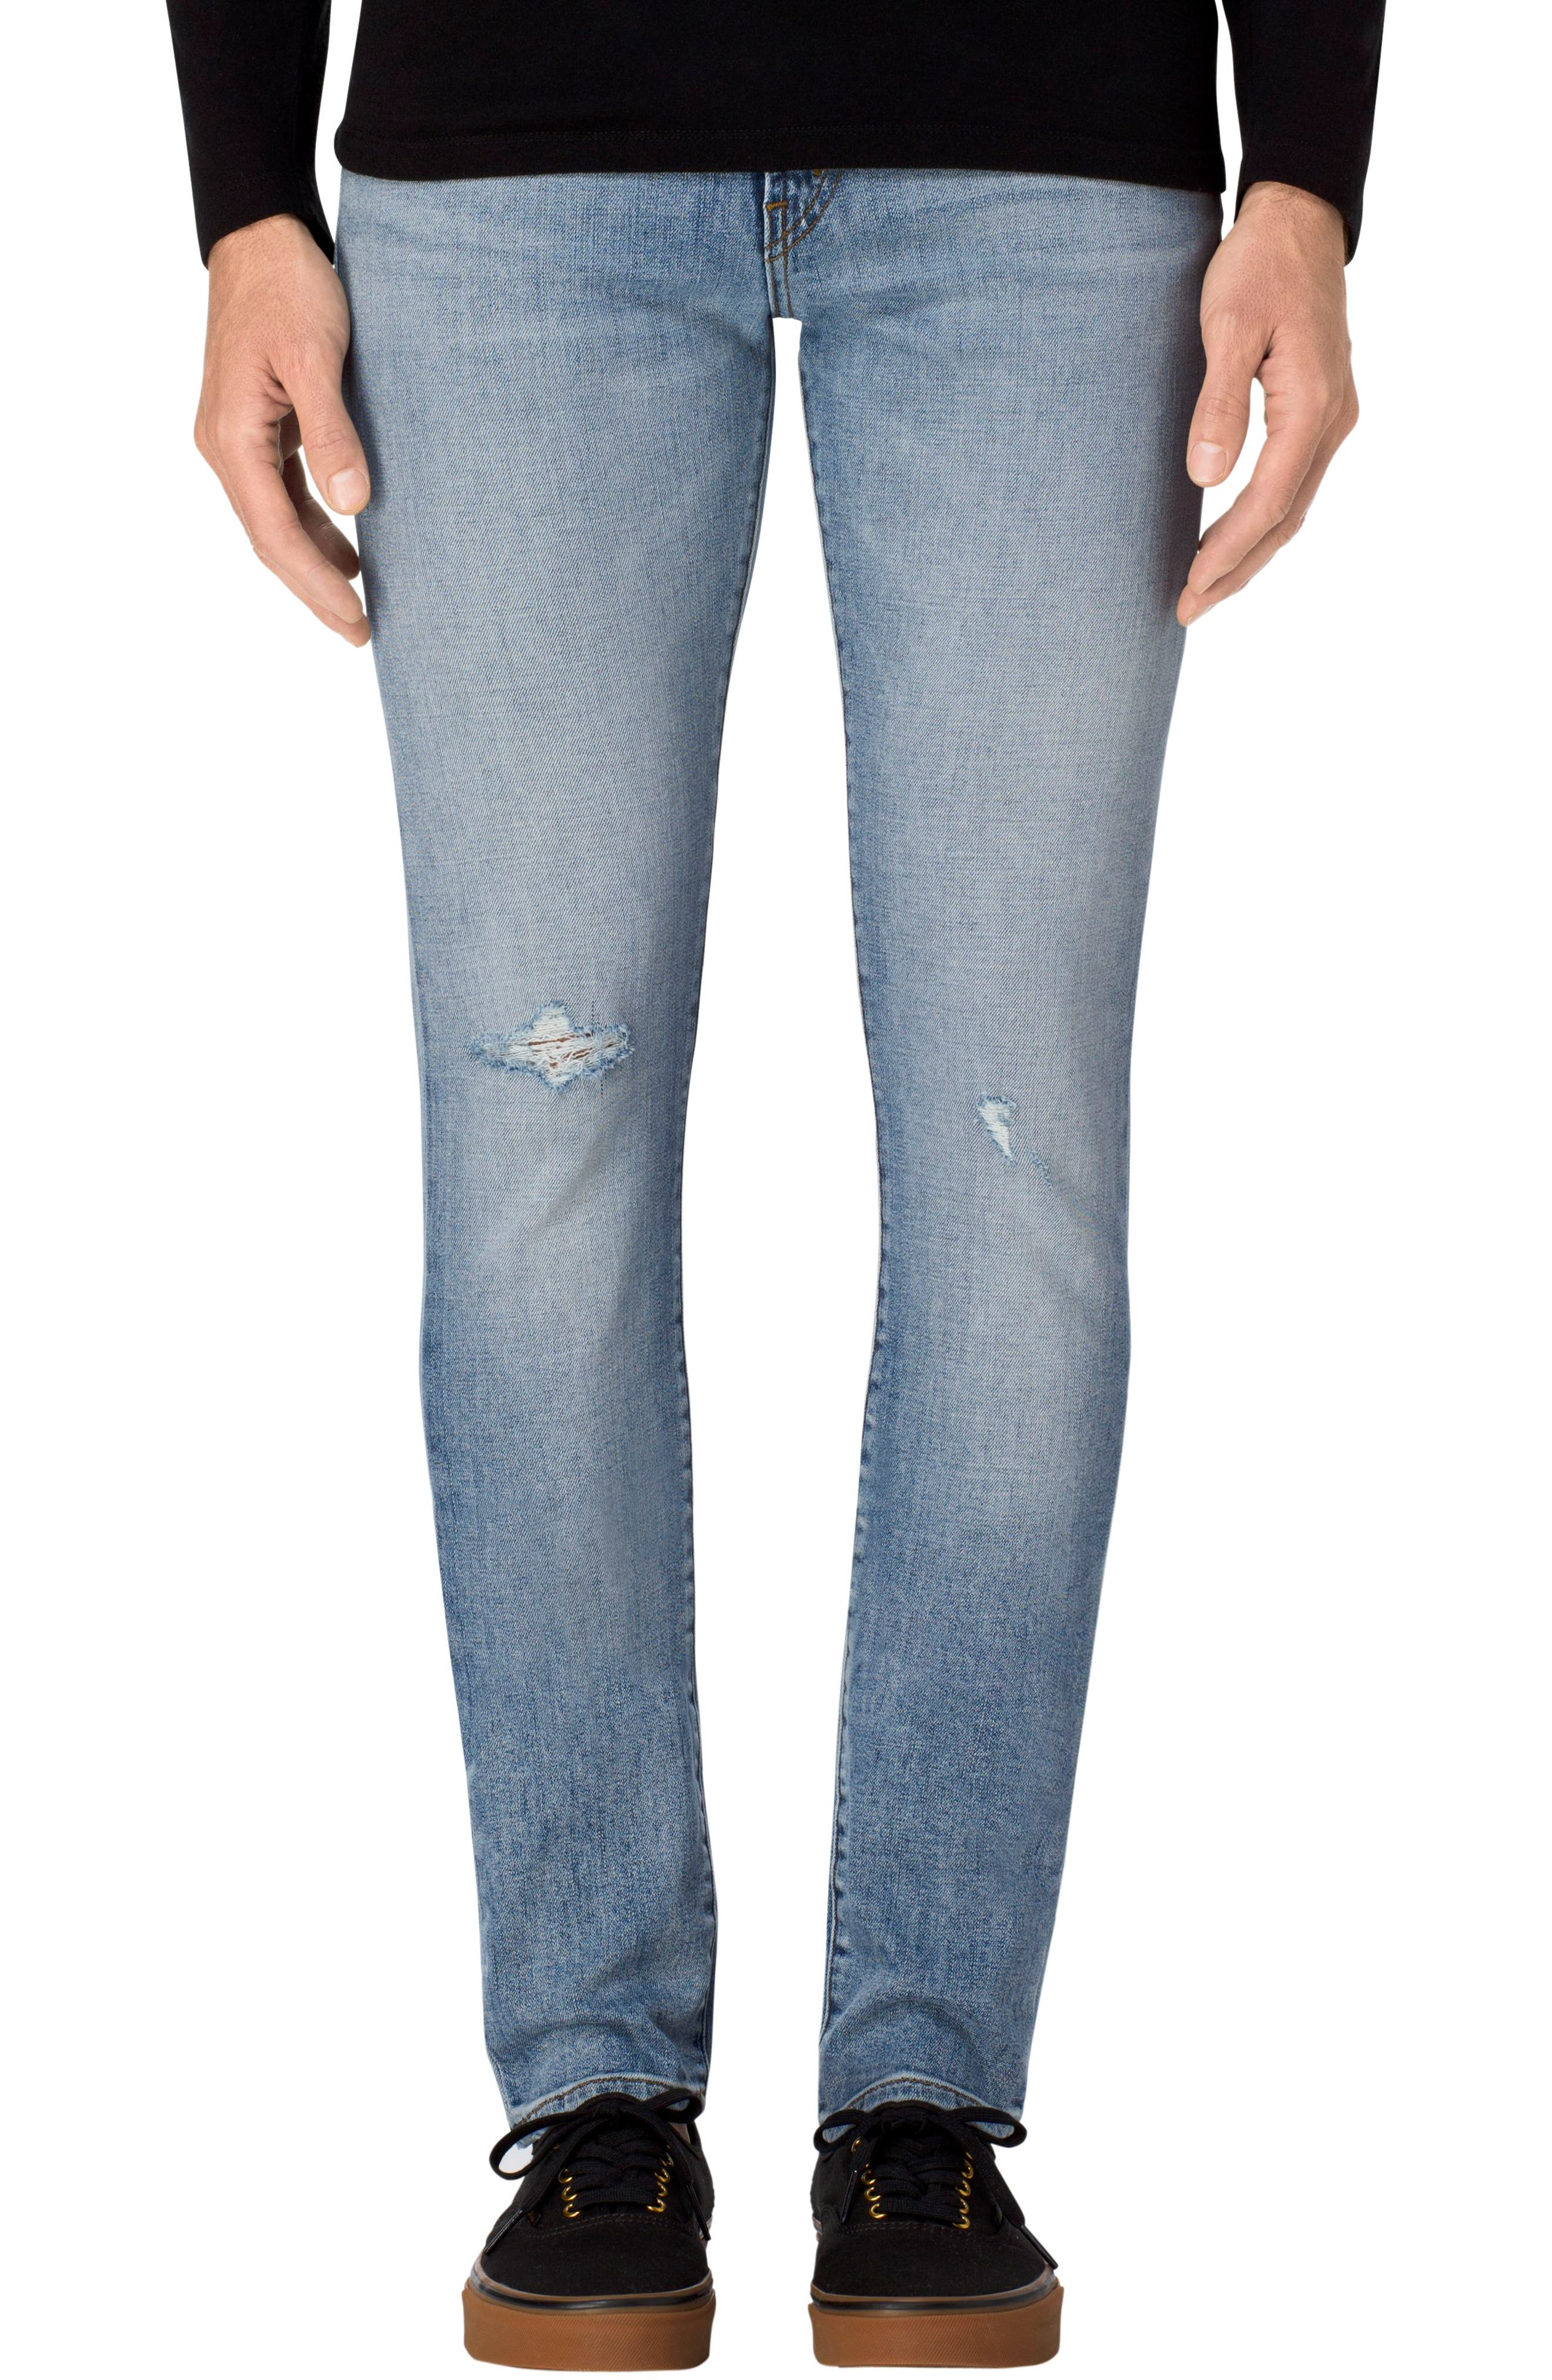 Mick Skinny Fit Jeans,                             Main thumbnail 1, color,                             Astroid